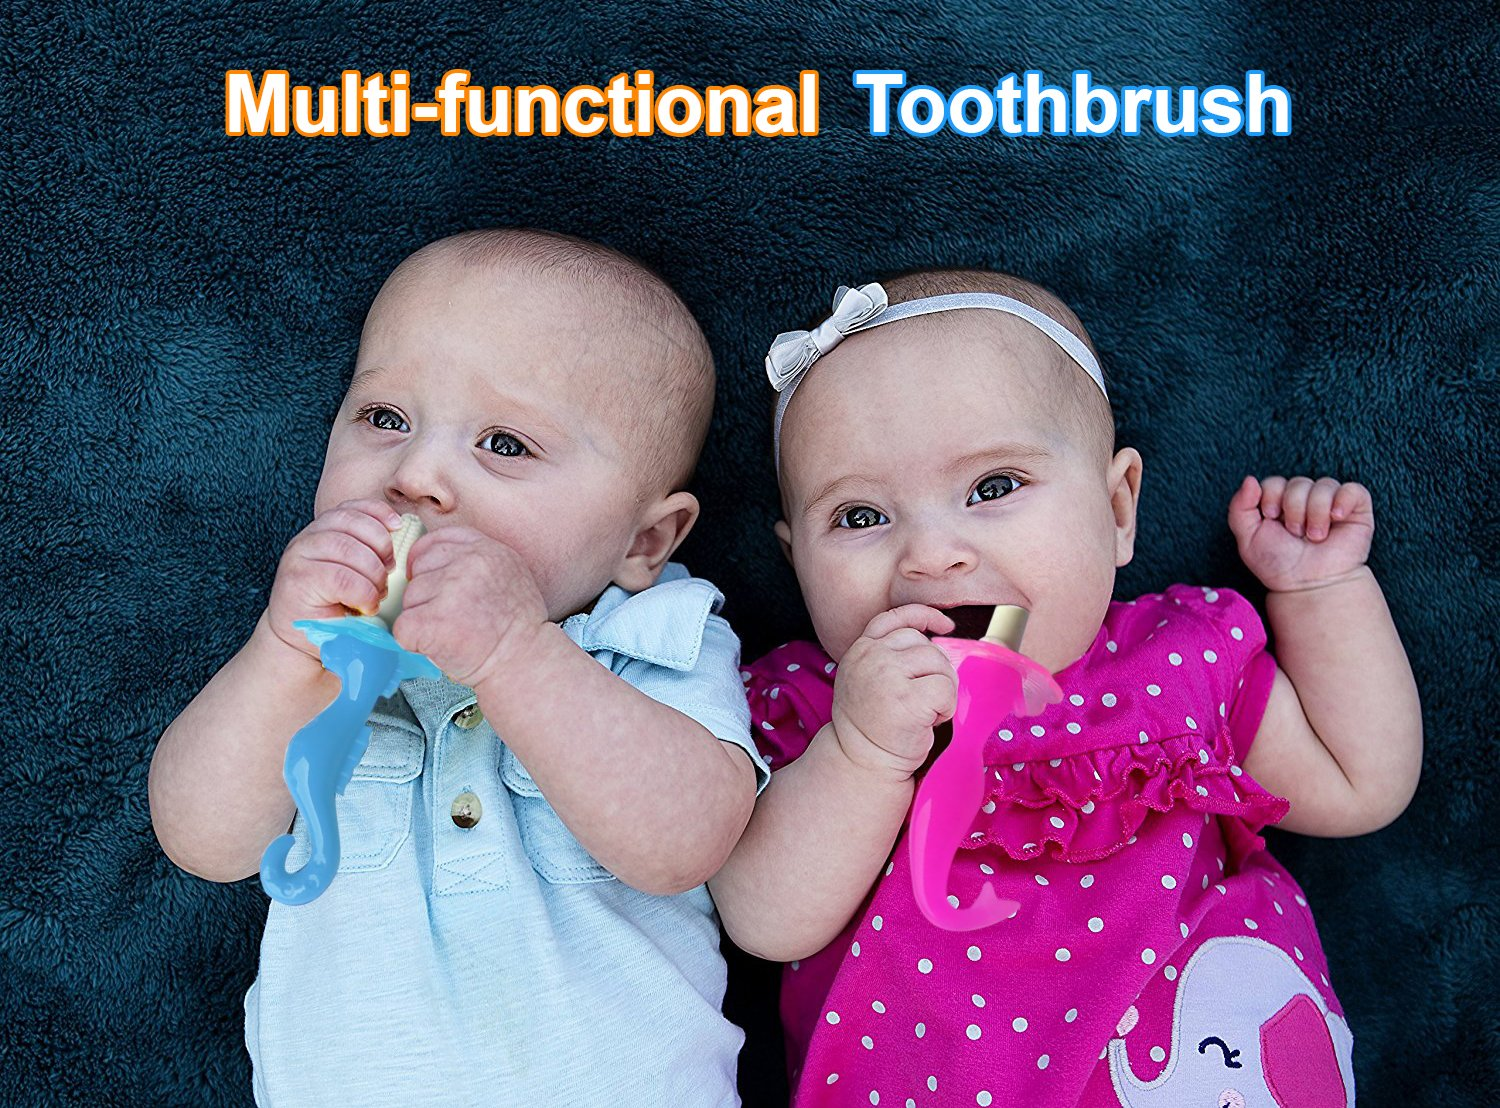 CuteStuffs Seahorse and Mermaid Baby Toothbrush and Teether; Training Toothbrush for Infants and Toddlers, Soft Bristles, BPA-Free (Mermaid and Seahorse 2 Pack)